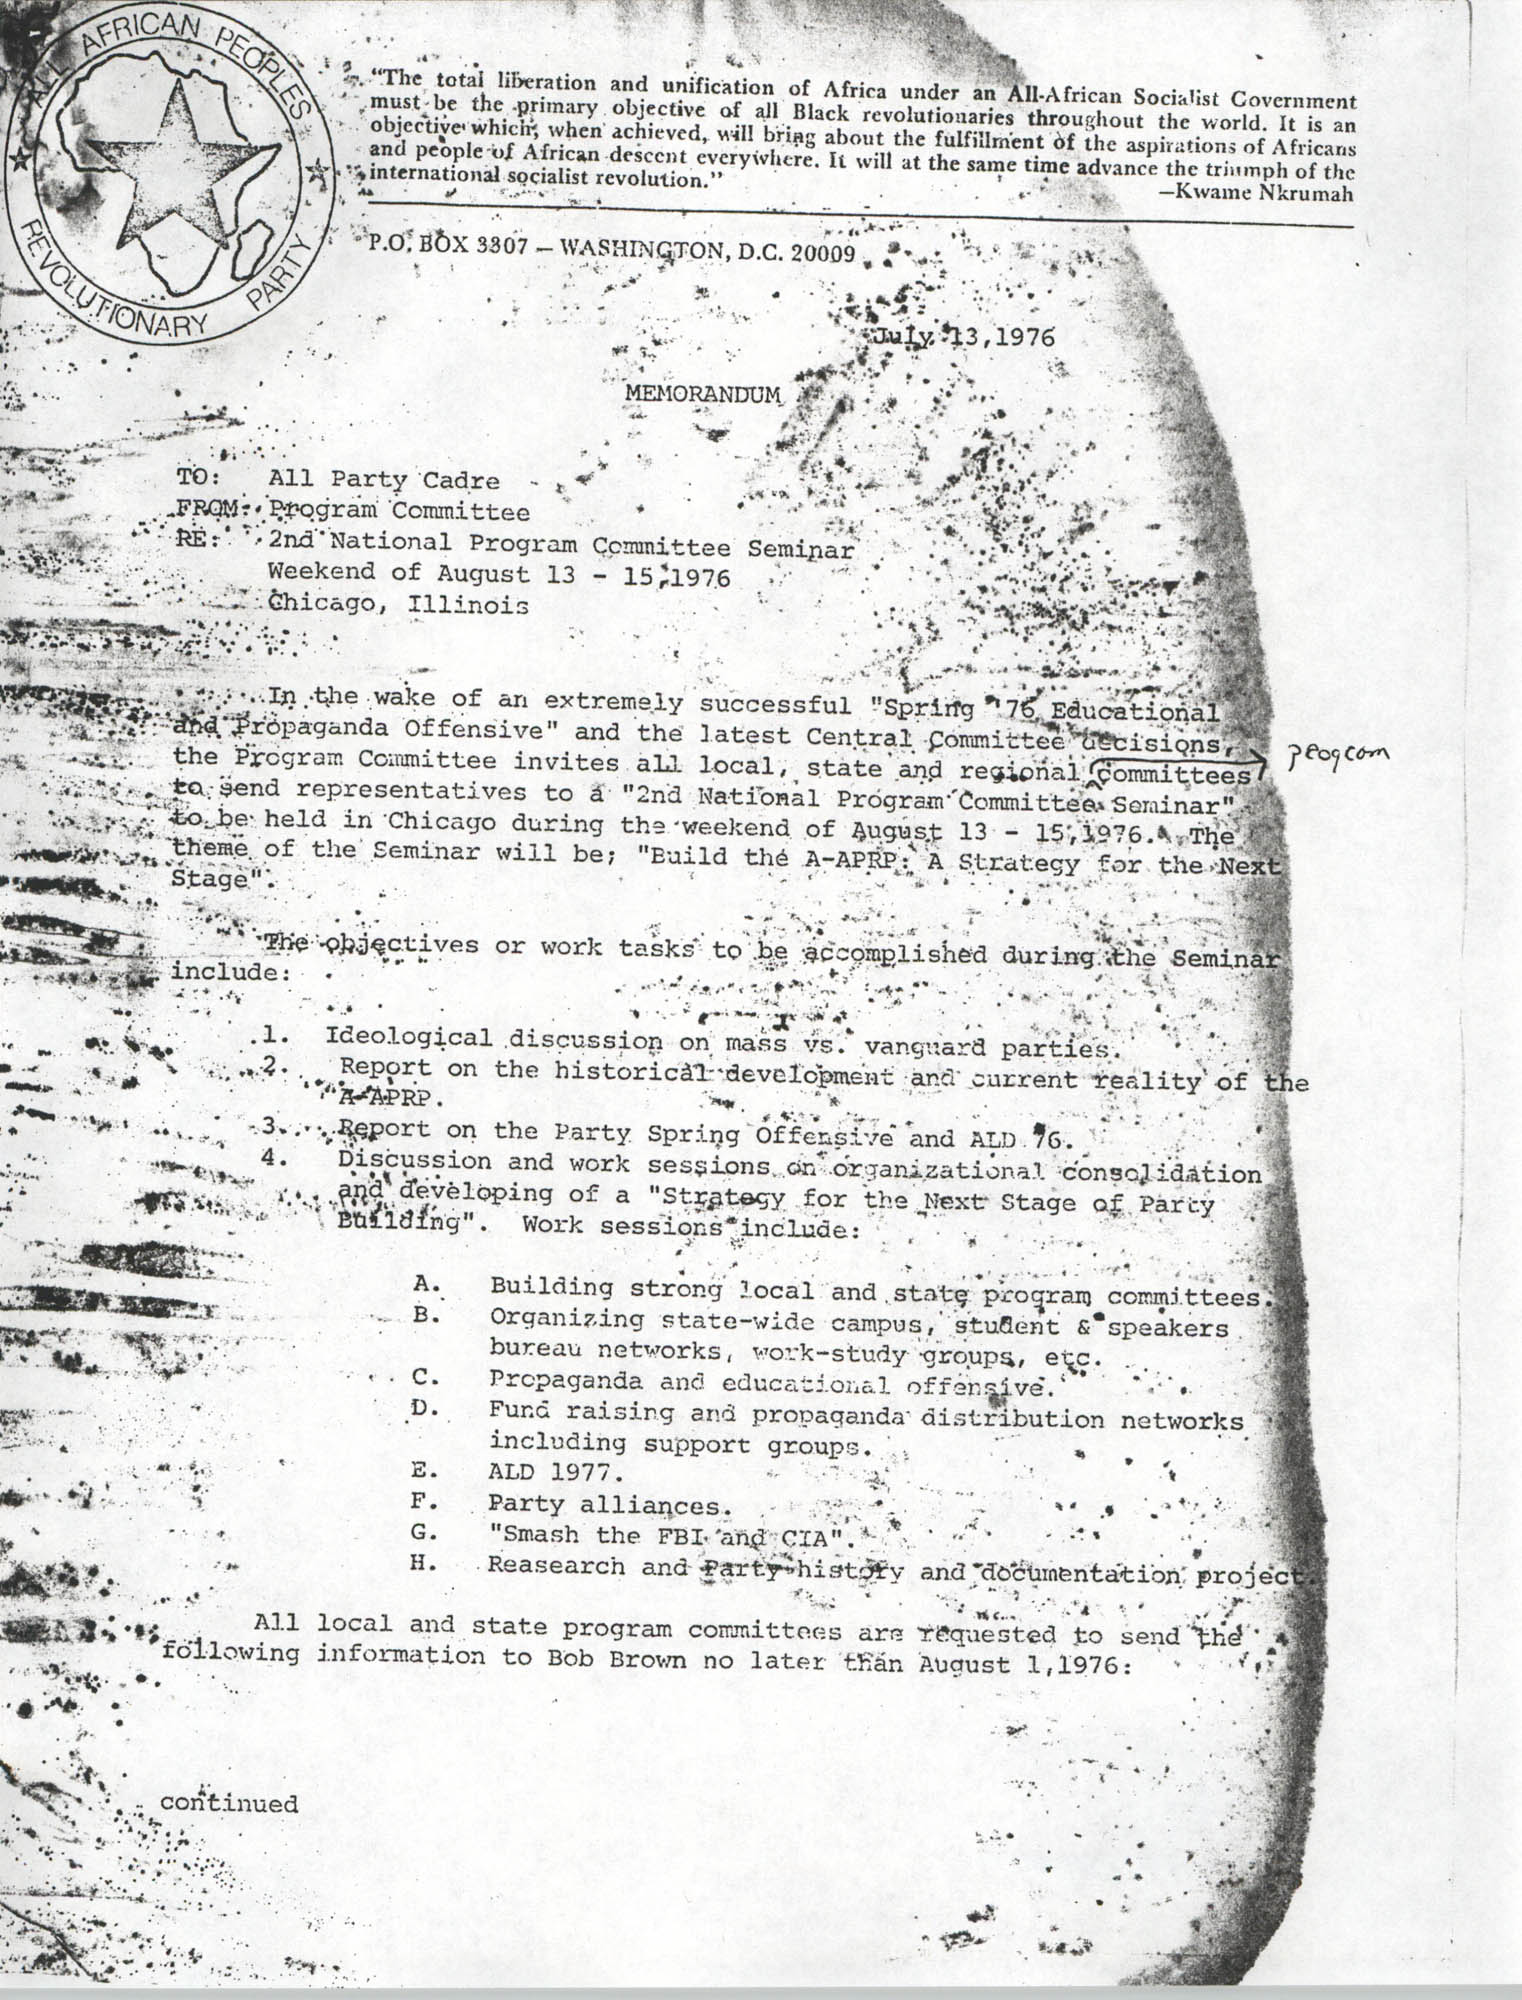 All African People's Revolutionary Party Memorandum, July 13, 1976